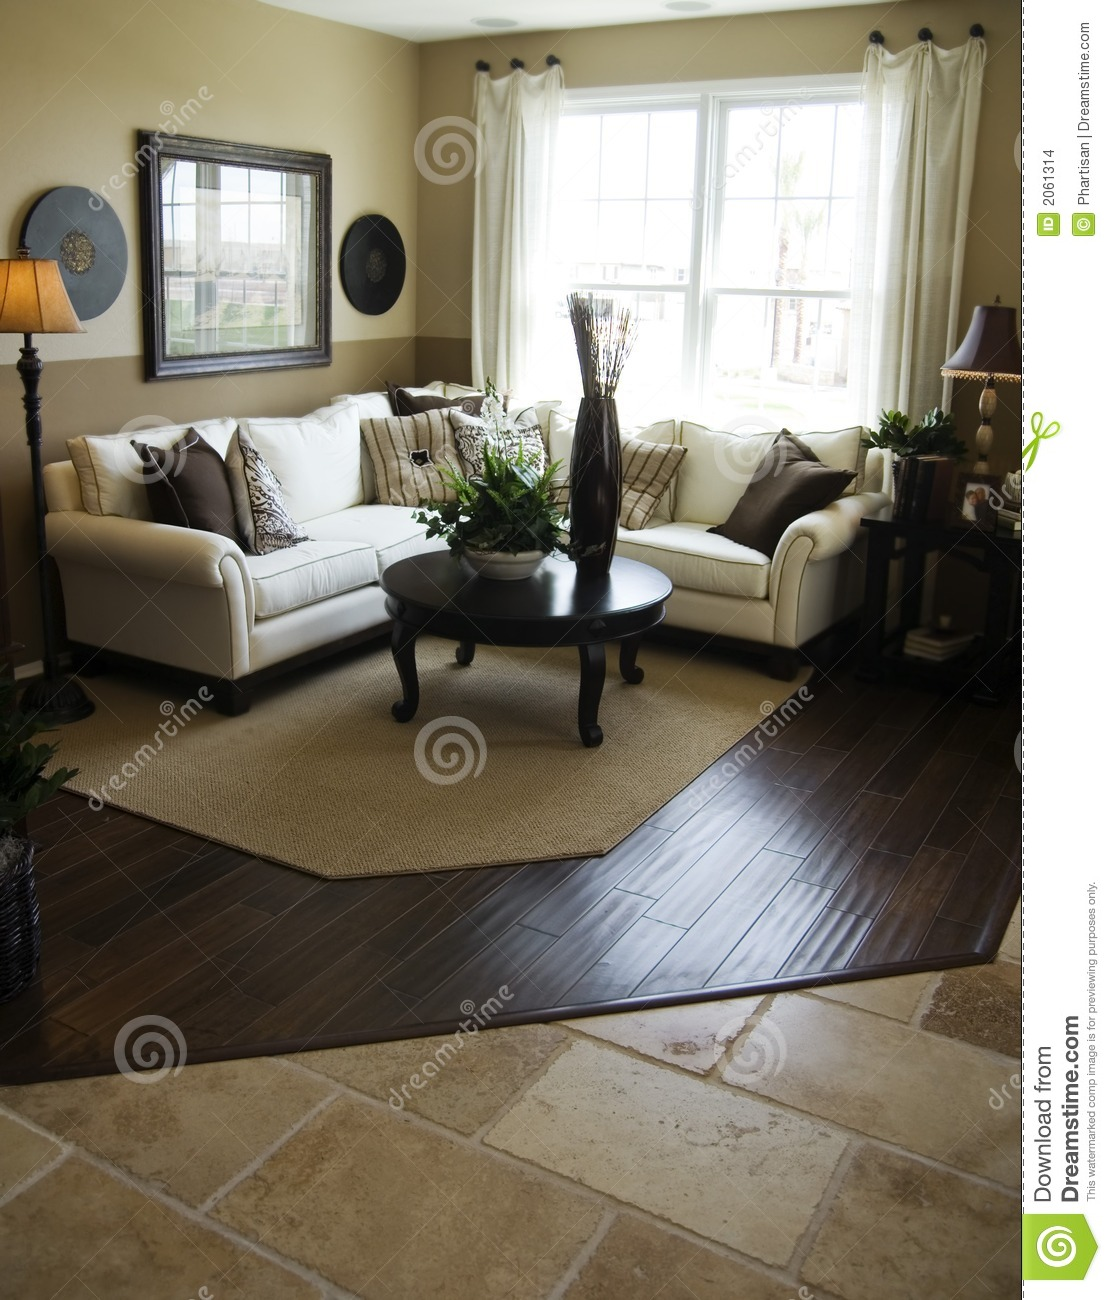 Model Home Interior Decorating: Model Home Interior Design Stock Images